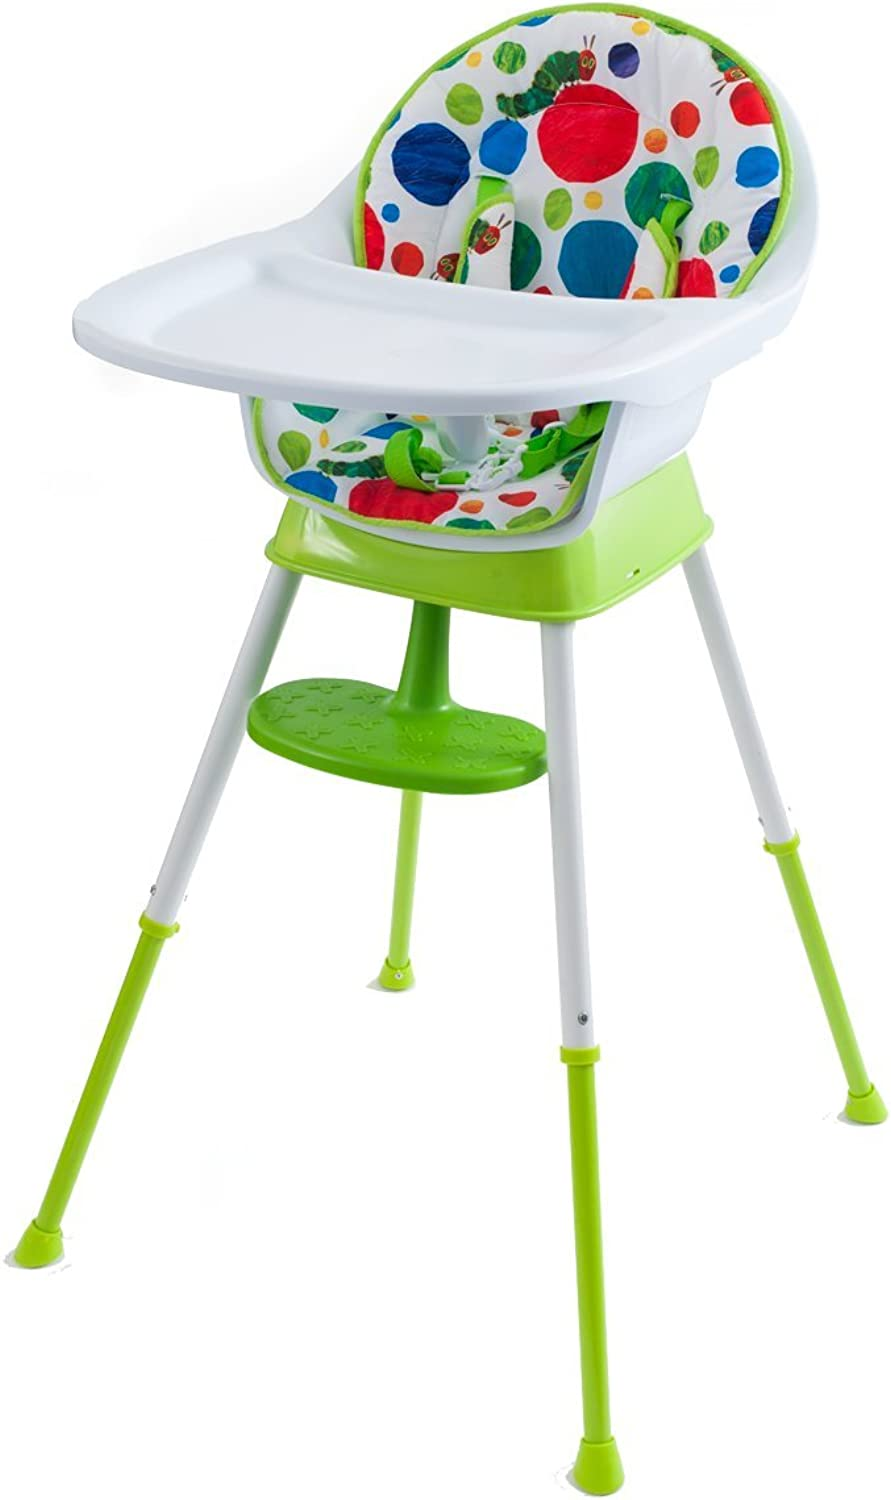 The World of Eric Carle The Very Hungry Caterpillar Happy and 3 in 1 High Chair, Playful Dots